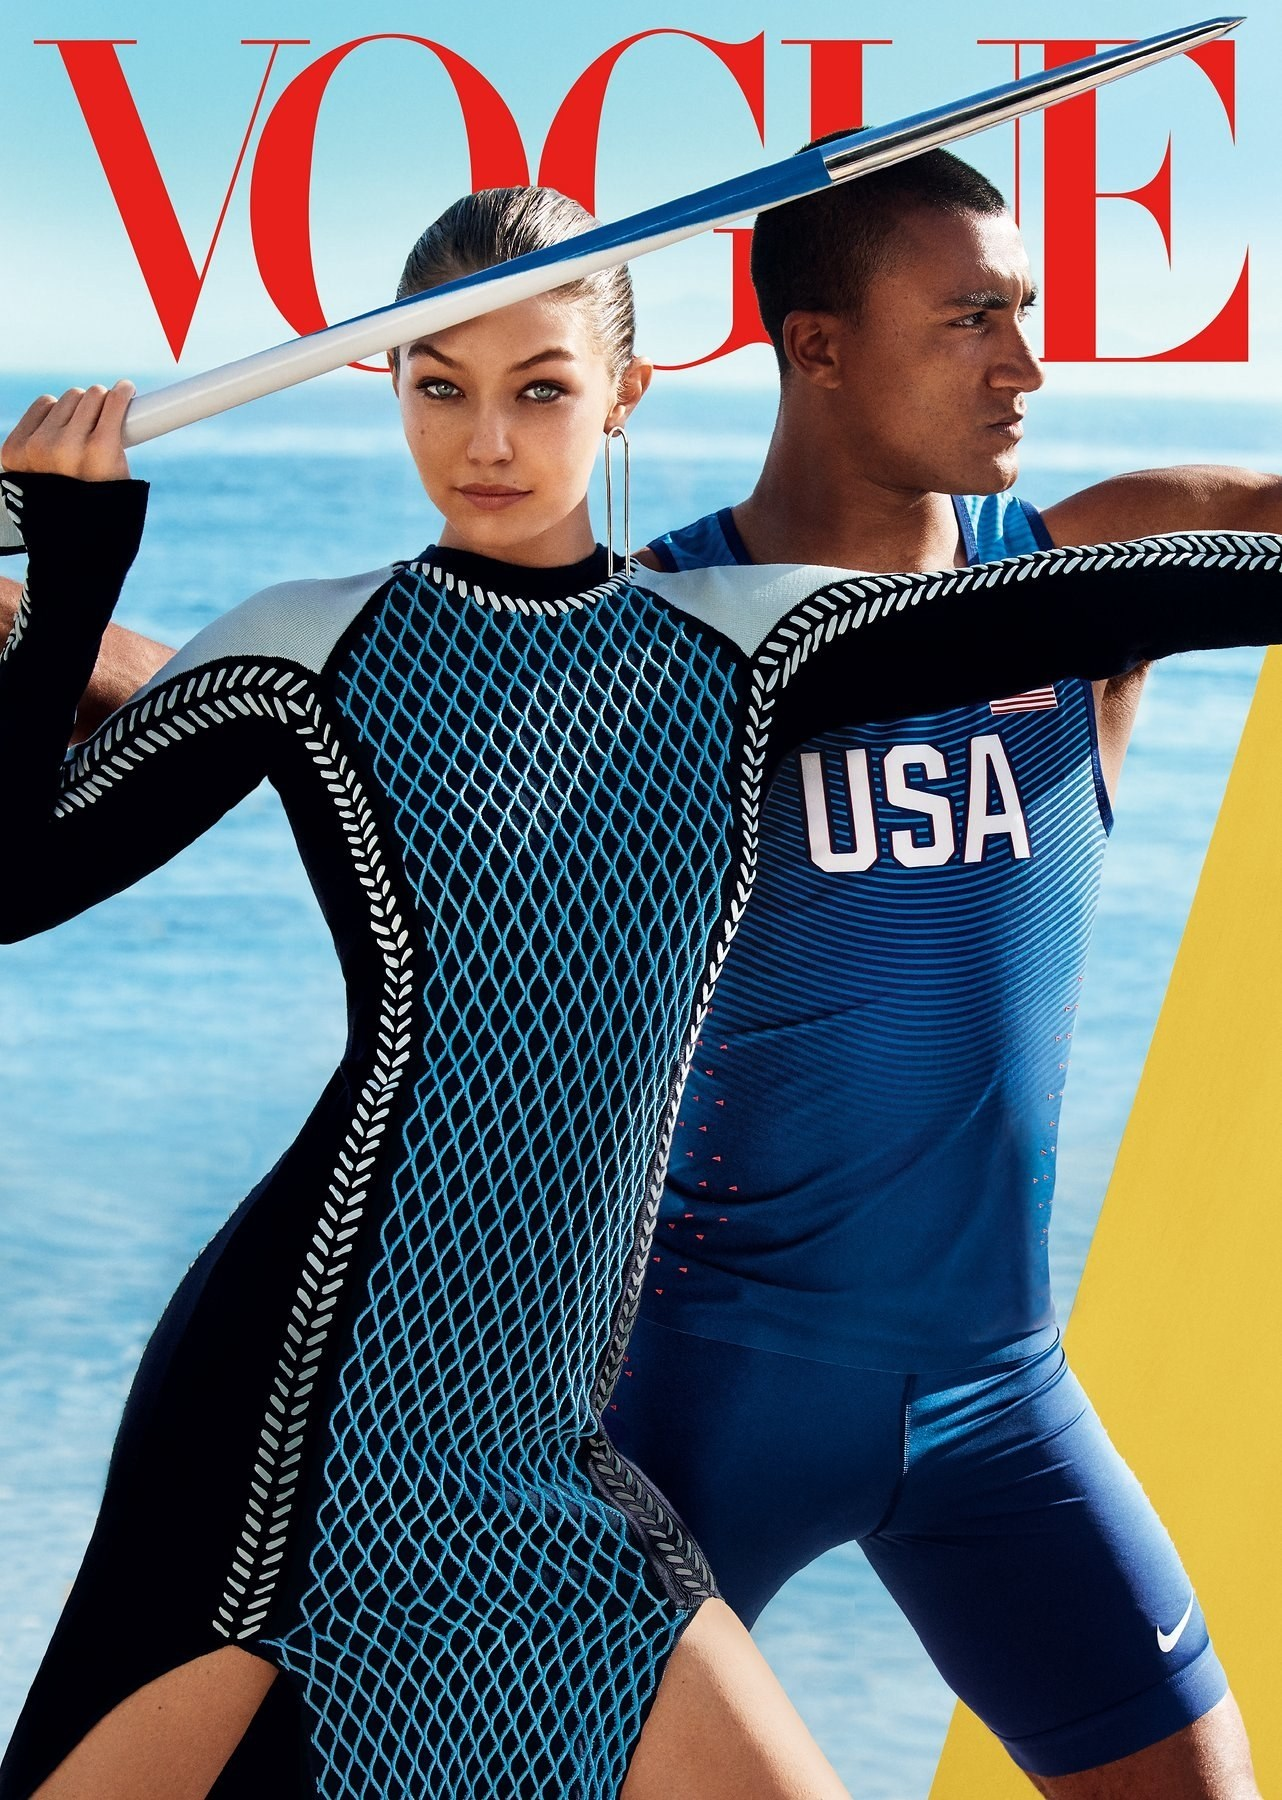 Gigi Hadid has landed her FIRST-ever American *Vogue* cover! Gigi stands alongside athlete Ashton Eaton, and looks like she's about to dominate her javelin class, for the August issue of the ~fancy~ publication. Congrats babes <3